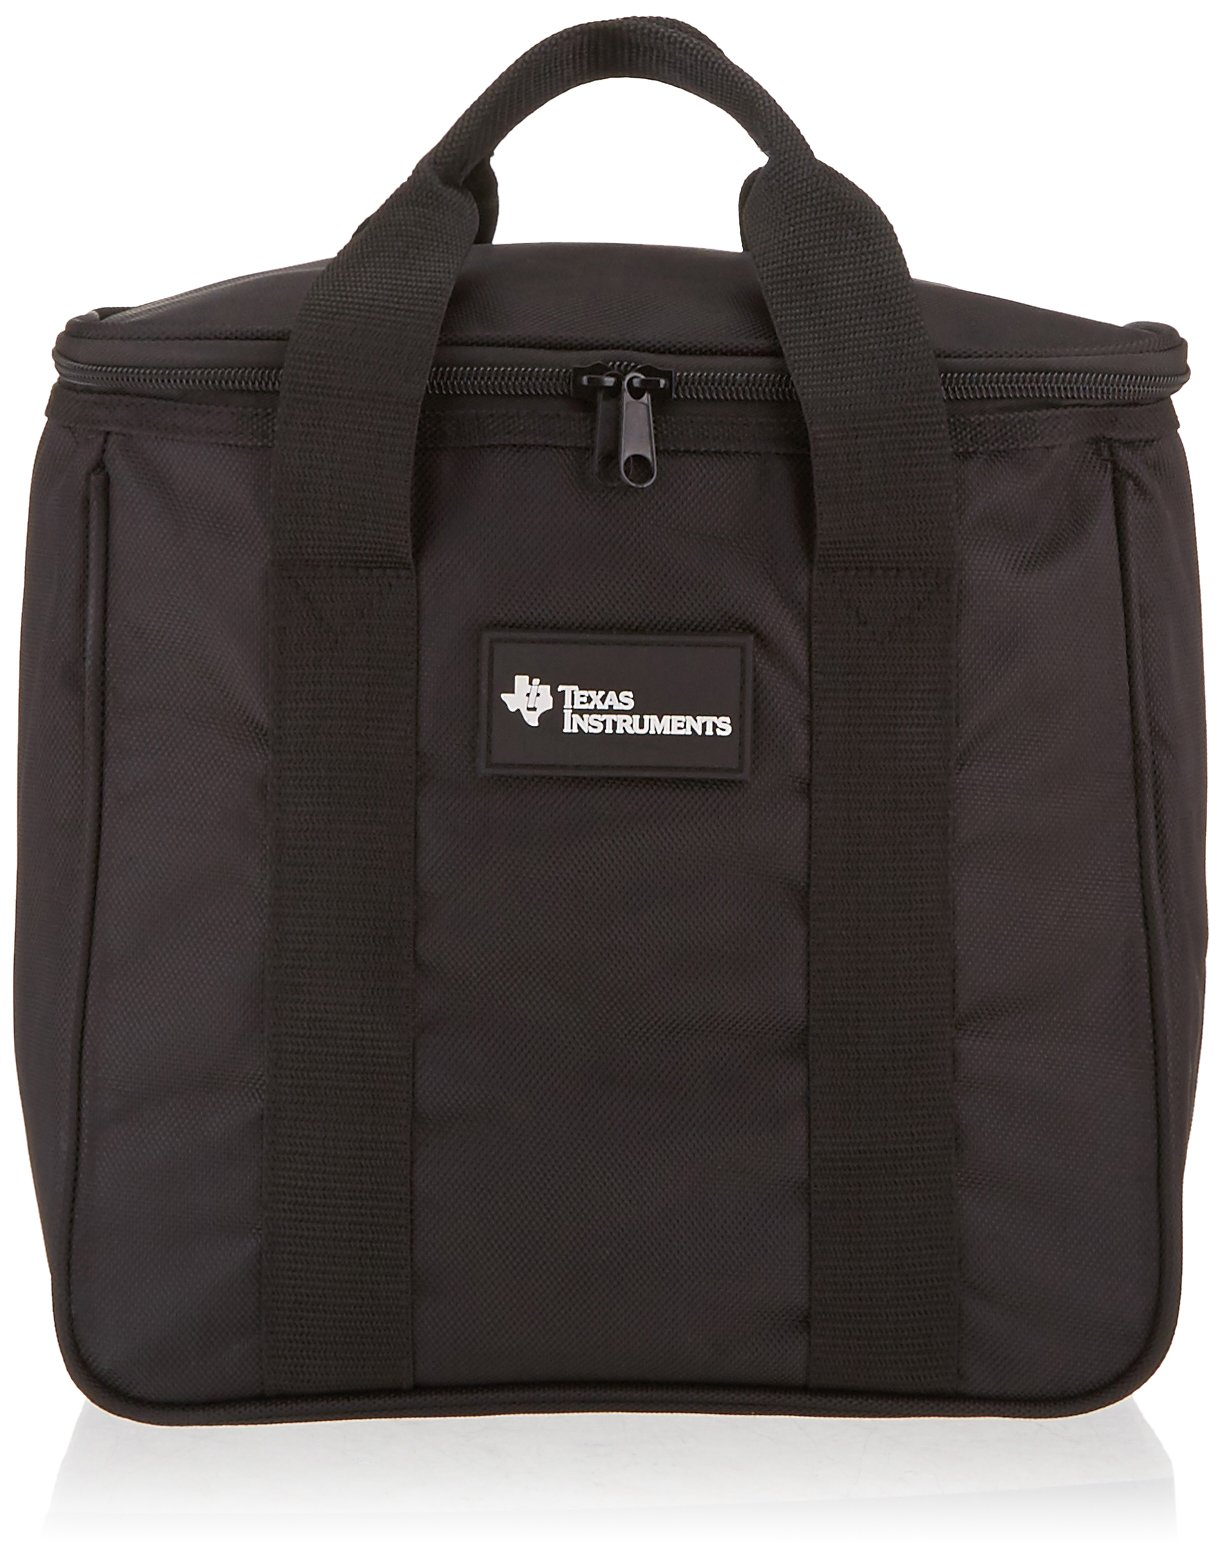 Texas Instruments Calculator Carrying Bag